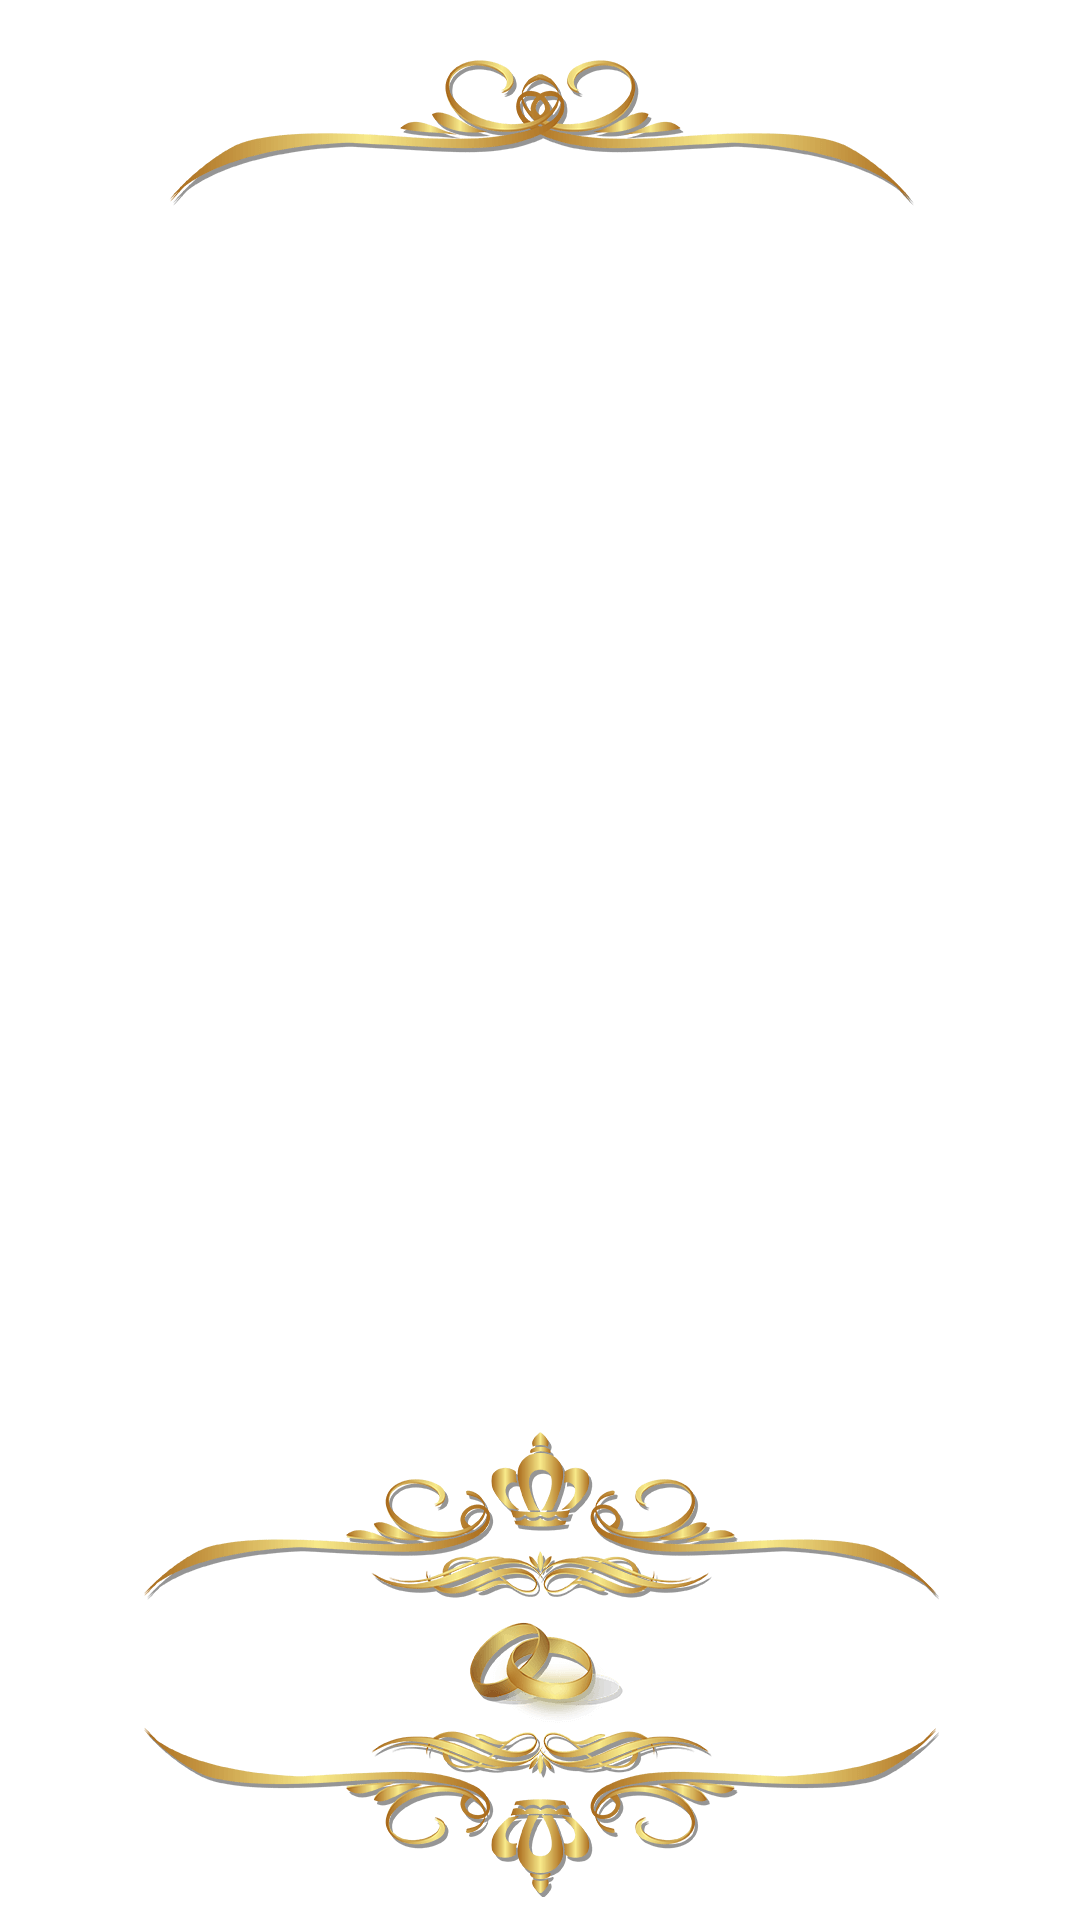 Elegant Golden Ornamental Wedding Snapchat Filter Geofilter Maker On Filterpop Wedding Snapchat Filter Wedding Snapchat Wedding Filters